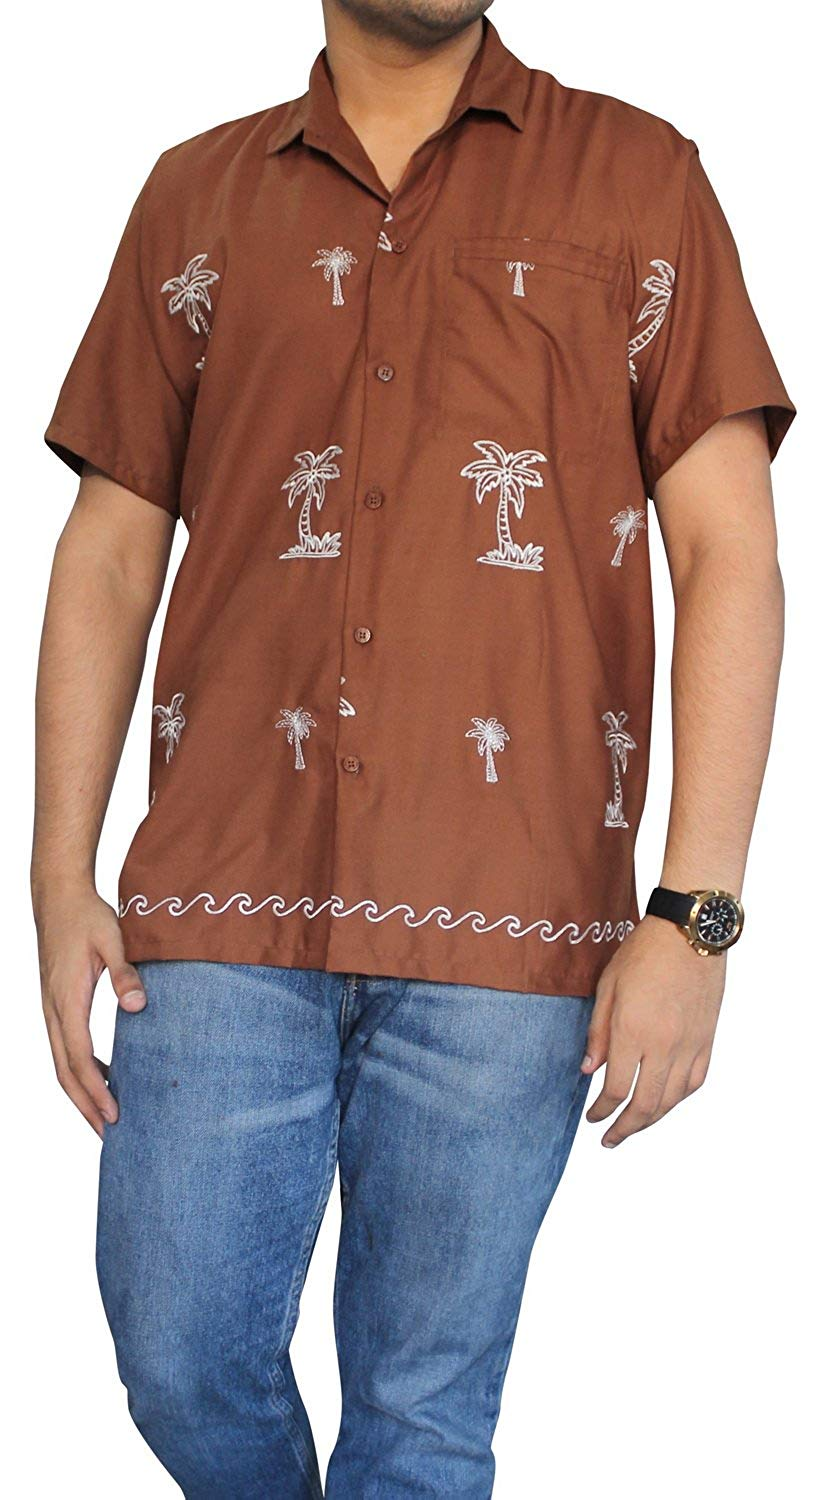 LA LEELA Shirt Casual Button Down Short Sleeve Beach Shirt Men Embroidered 189